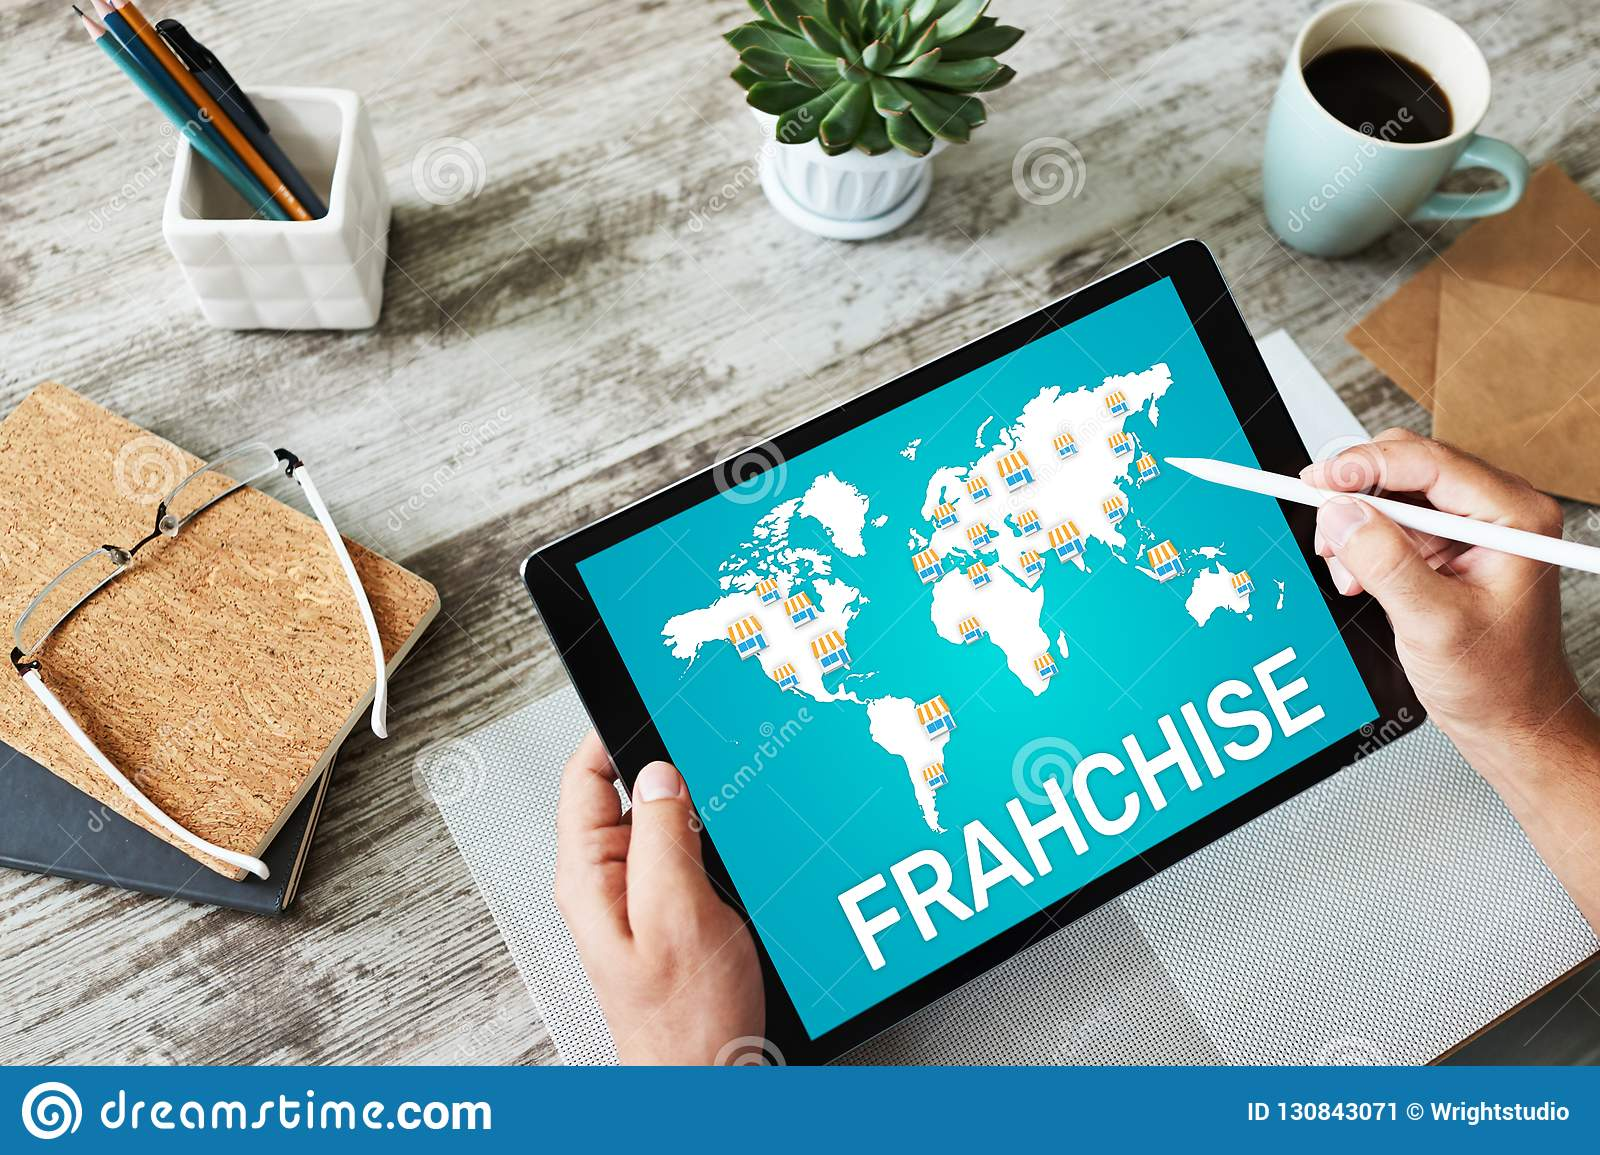 Franchise Business Model And Marketing Strategy Concept